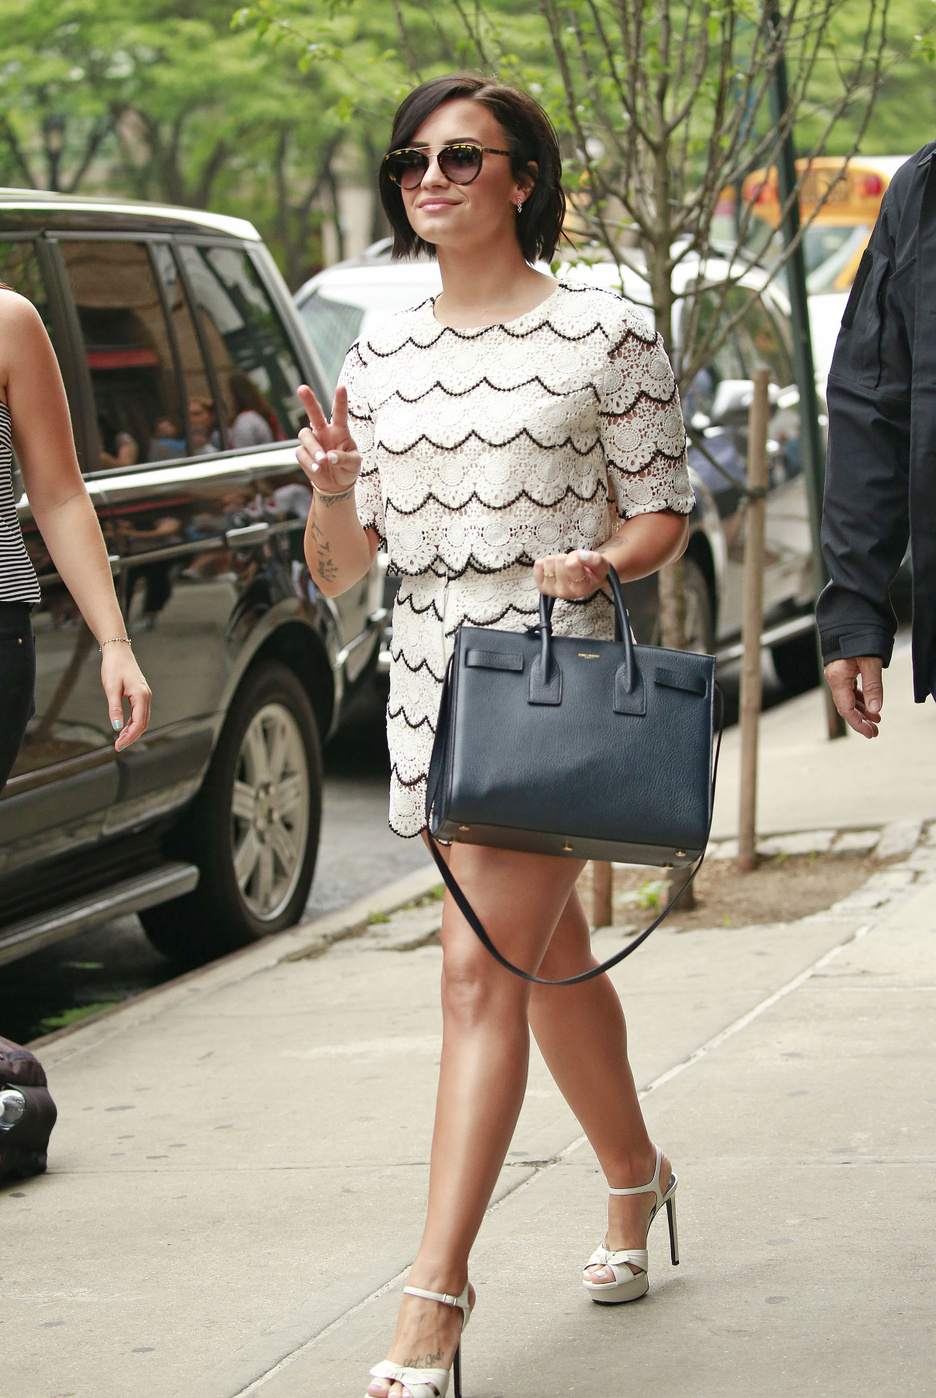 Demi Lovato waves the peace sign while on a stroll in New York City